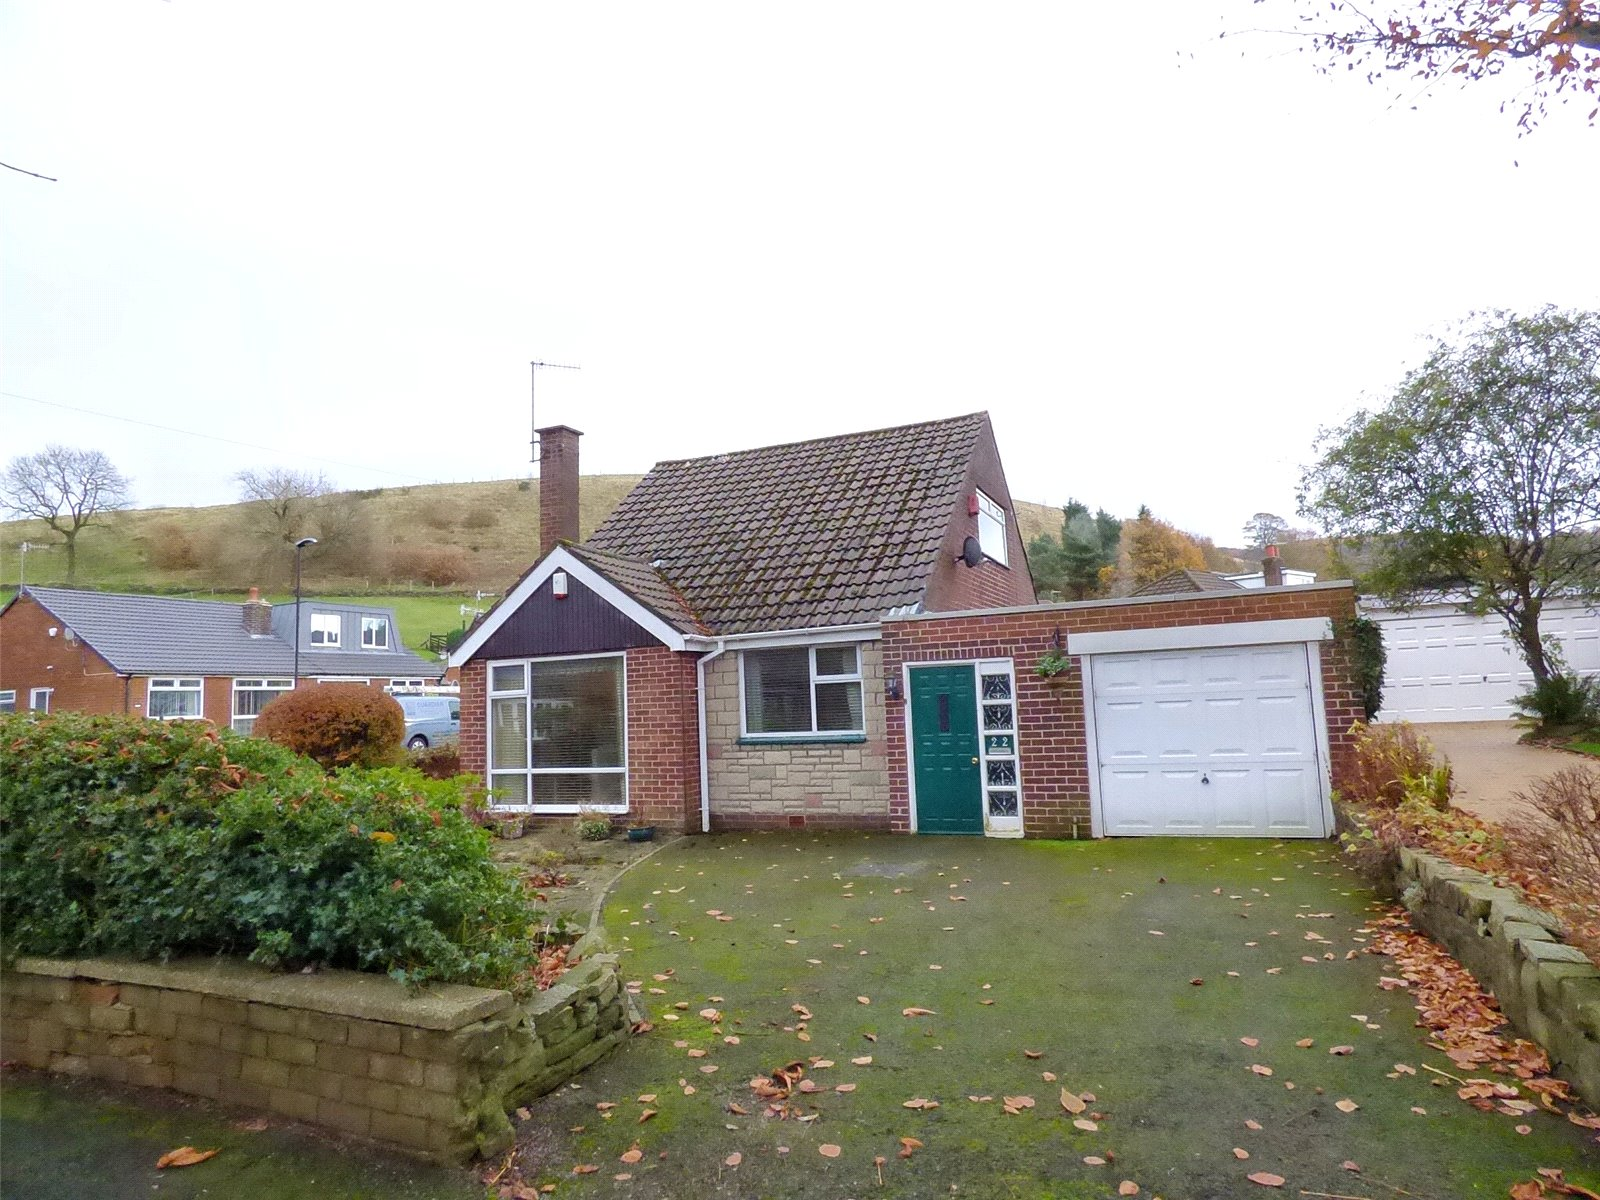 3 Bedrooms Detached Bungalow for sale in Shore Avenue, Shaw, Oldham, OL2